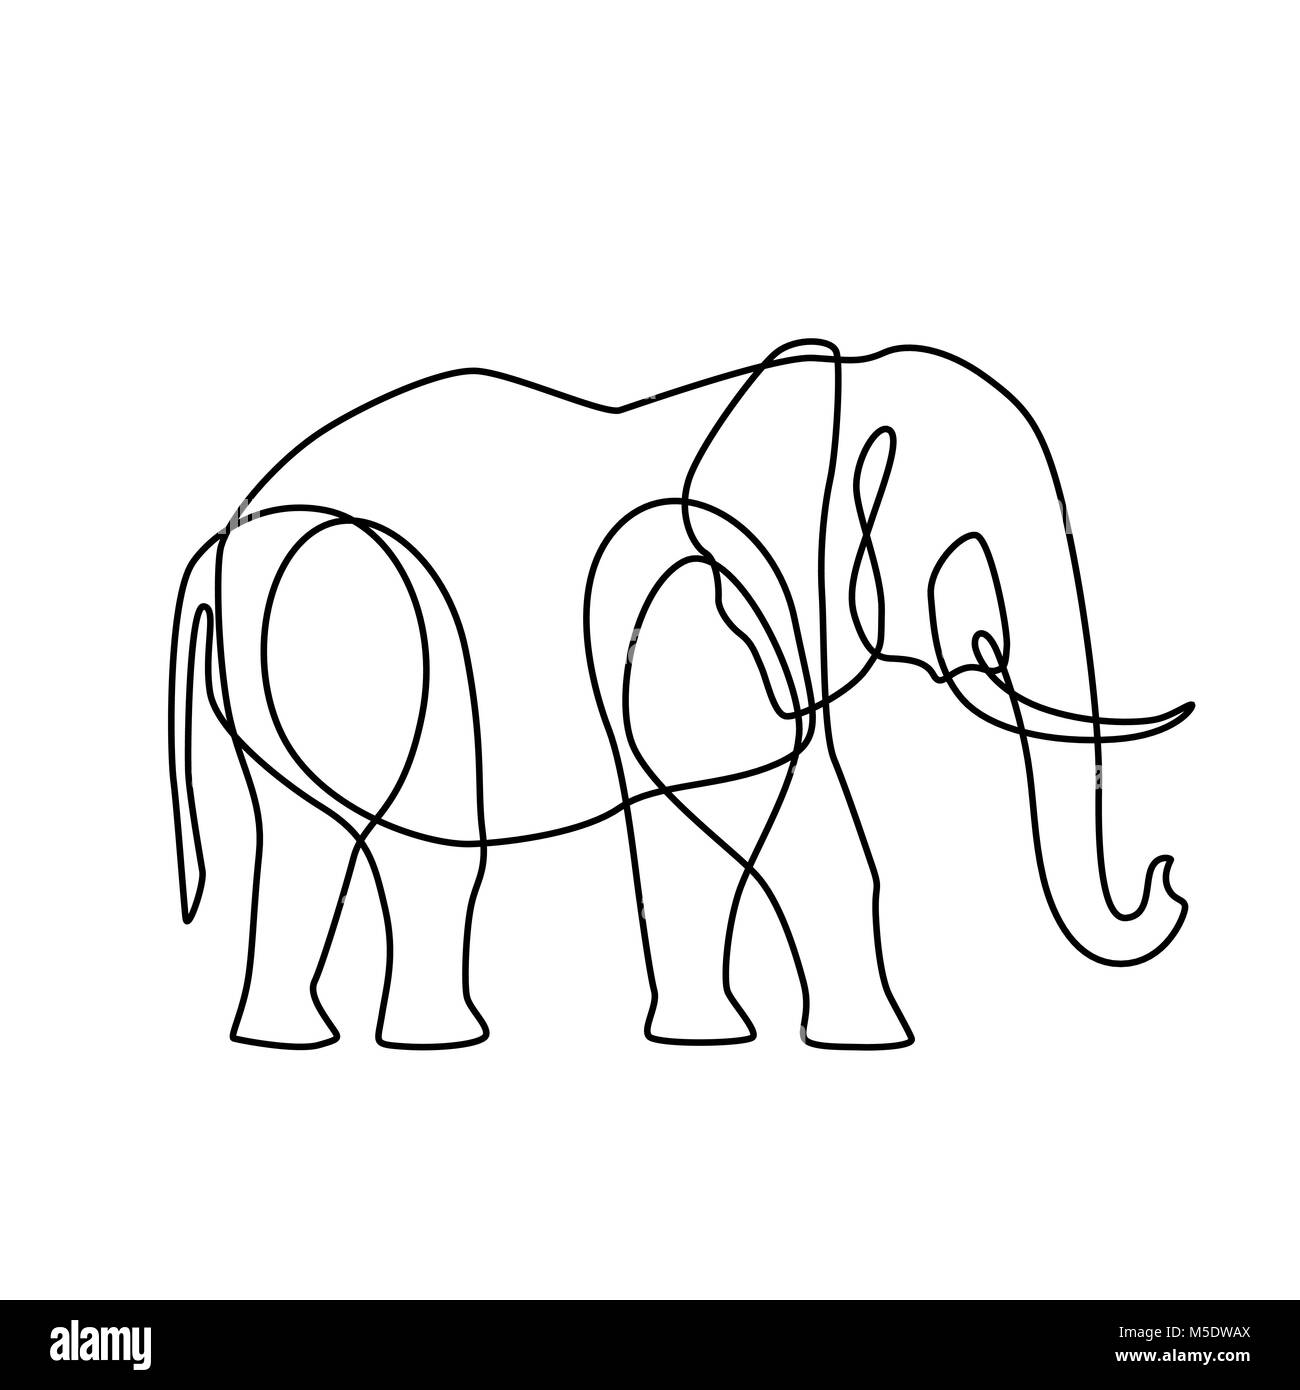 Endless line art illustration of elephant. Continuous black outline drawing on white background - Stock Image